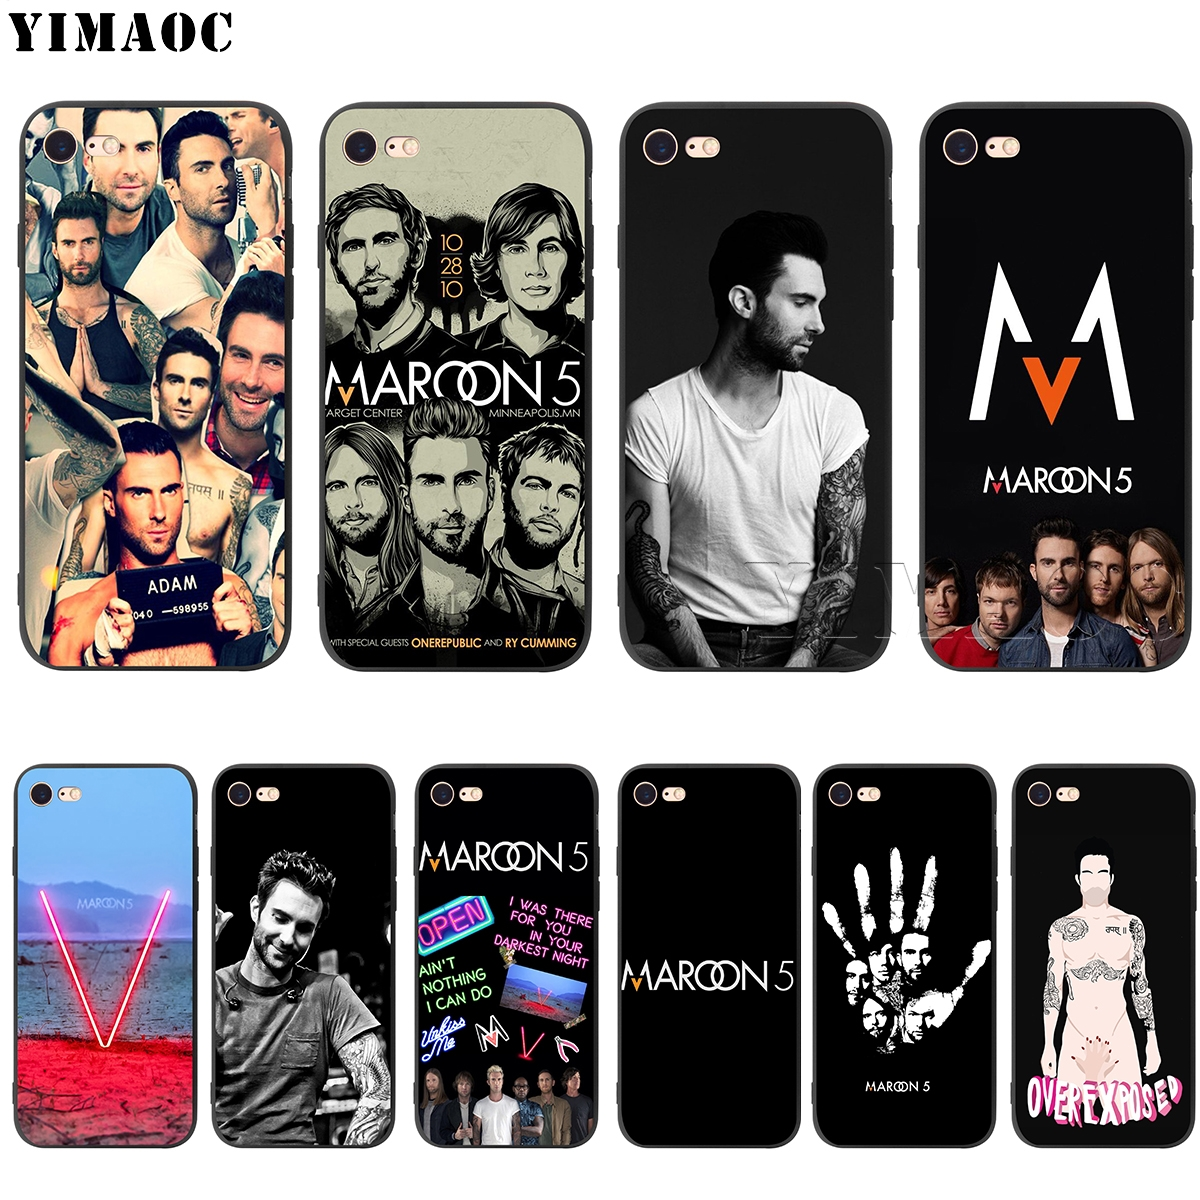 YIMAOC Maroon 5 Adam Levine Silicone Soft Case for iPhone 5 5S SE 6 6S 7 8 Plus X